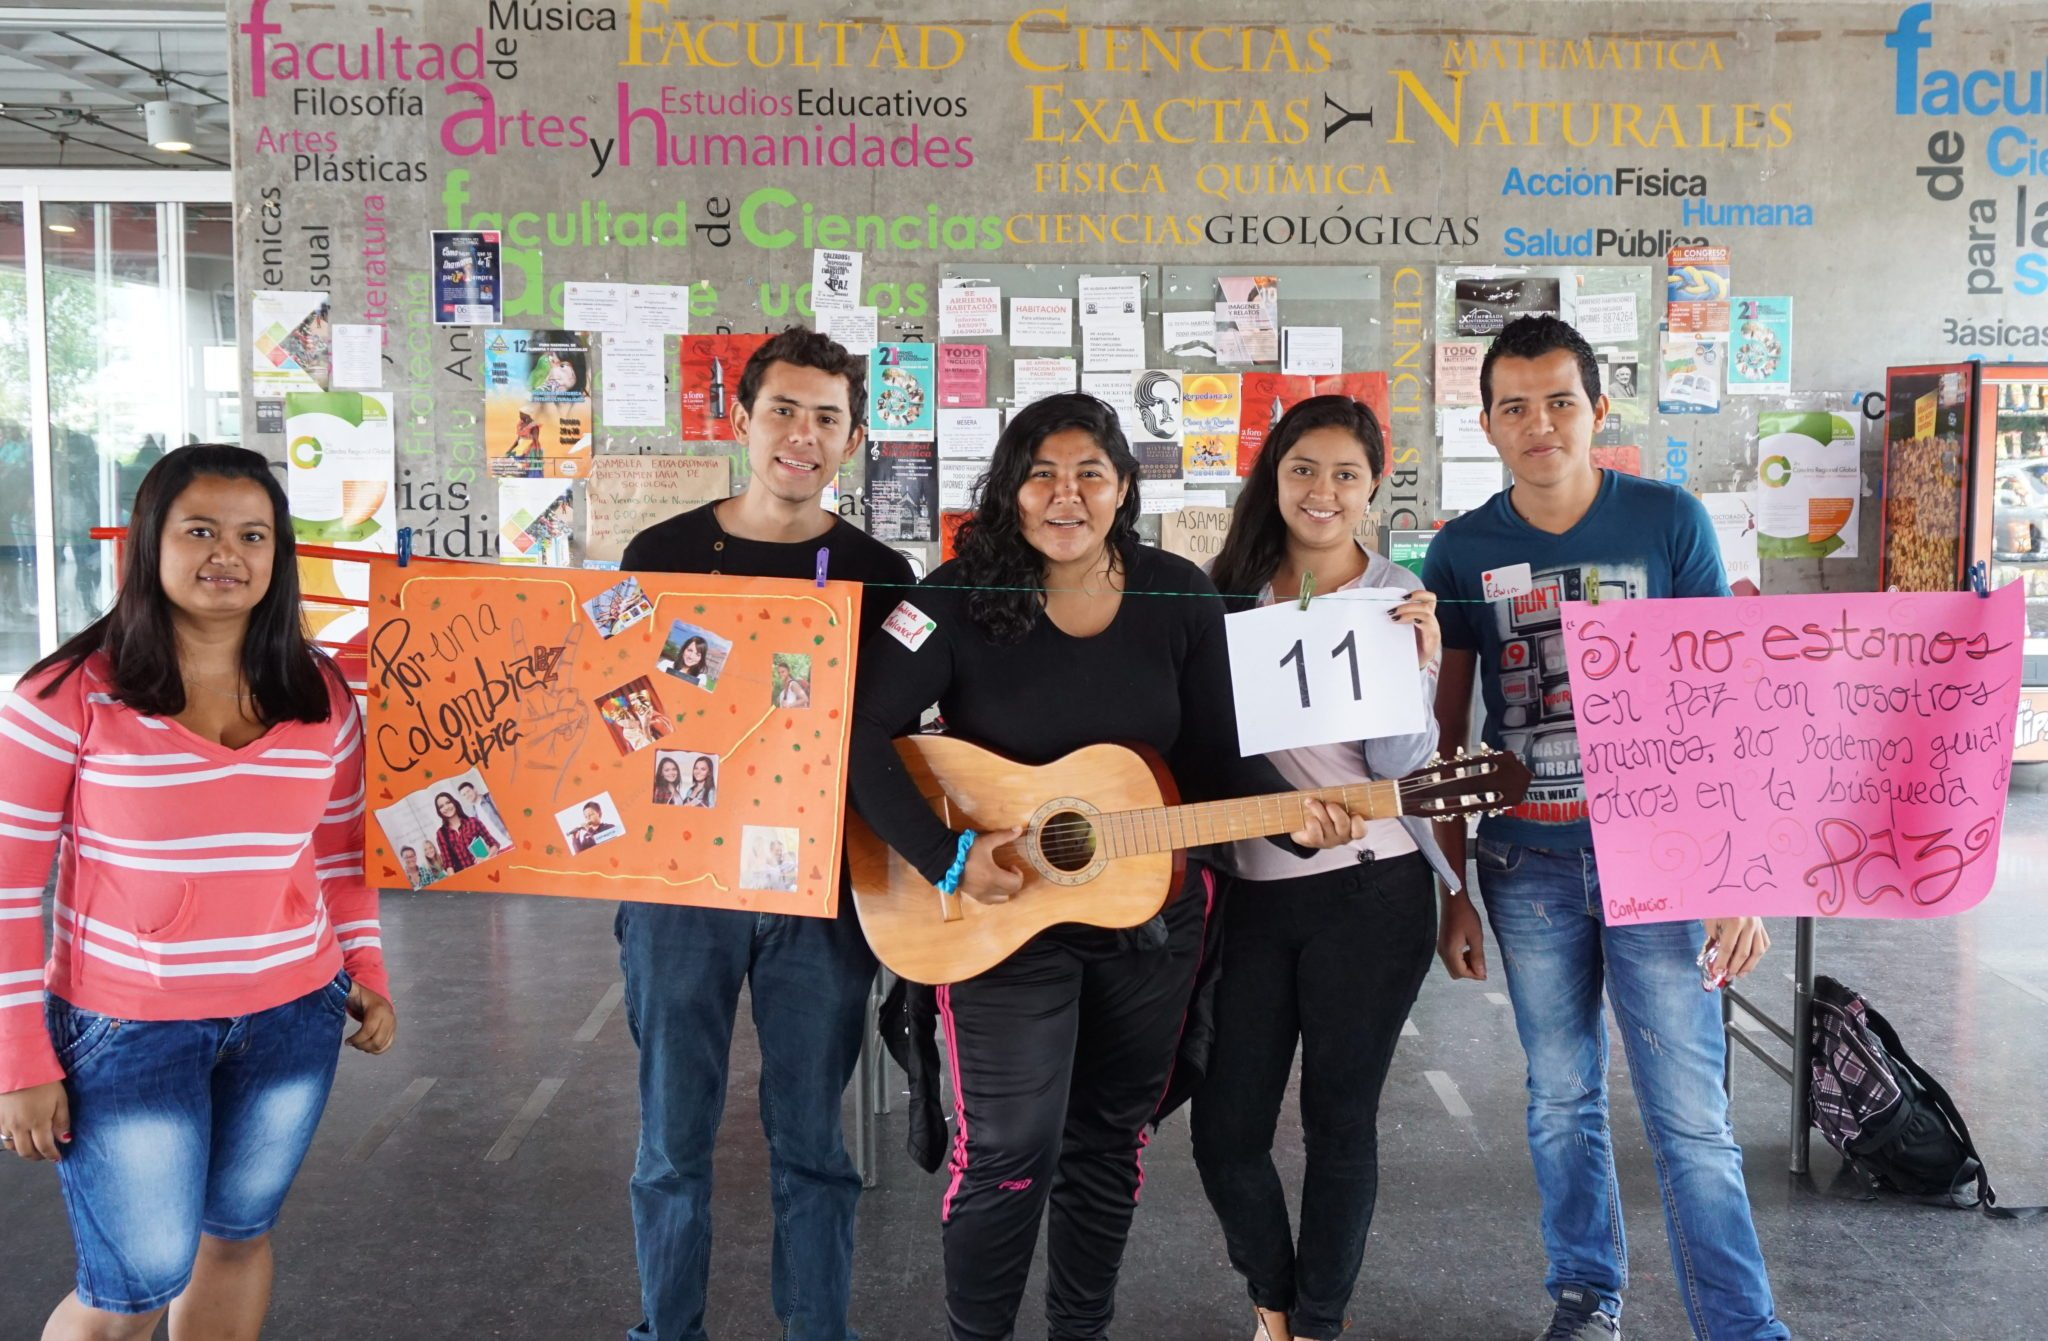 Building peace from Colombian universities - Global Campaign for